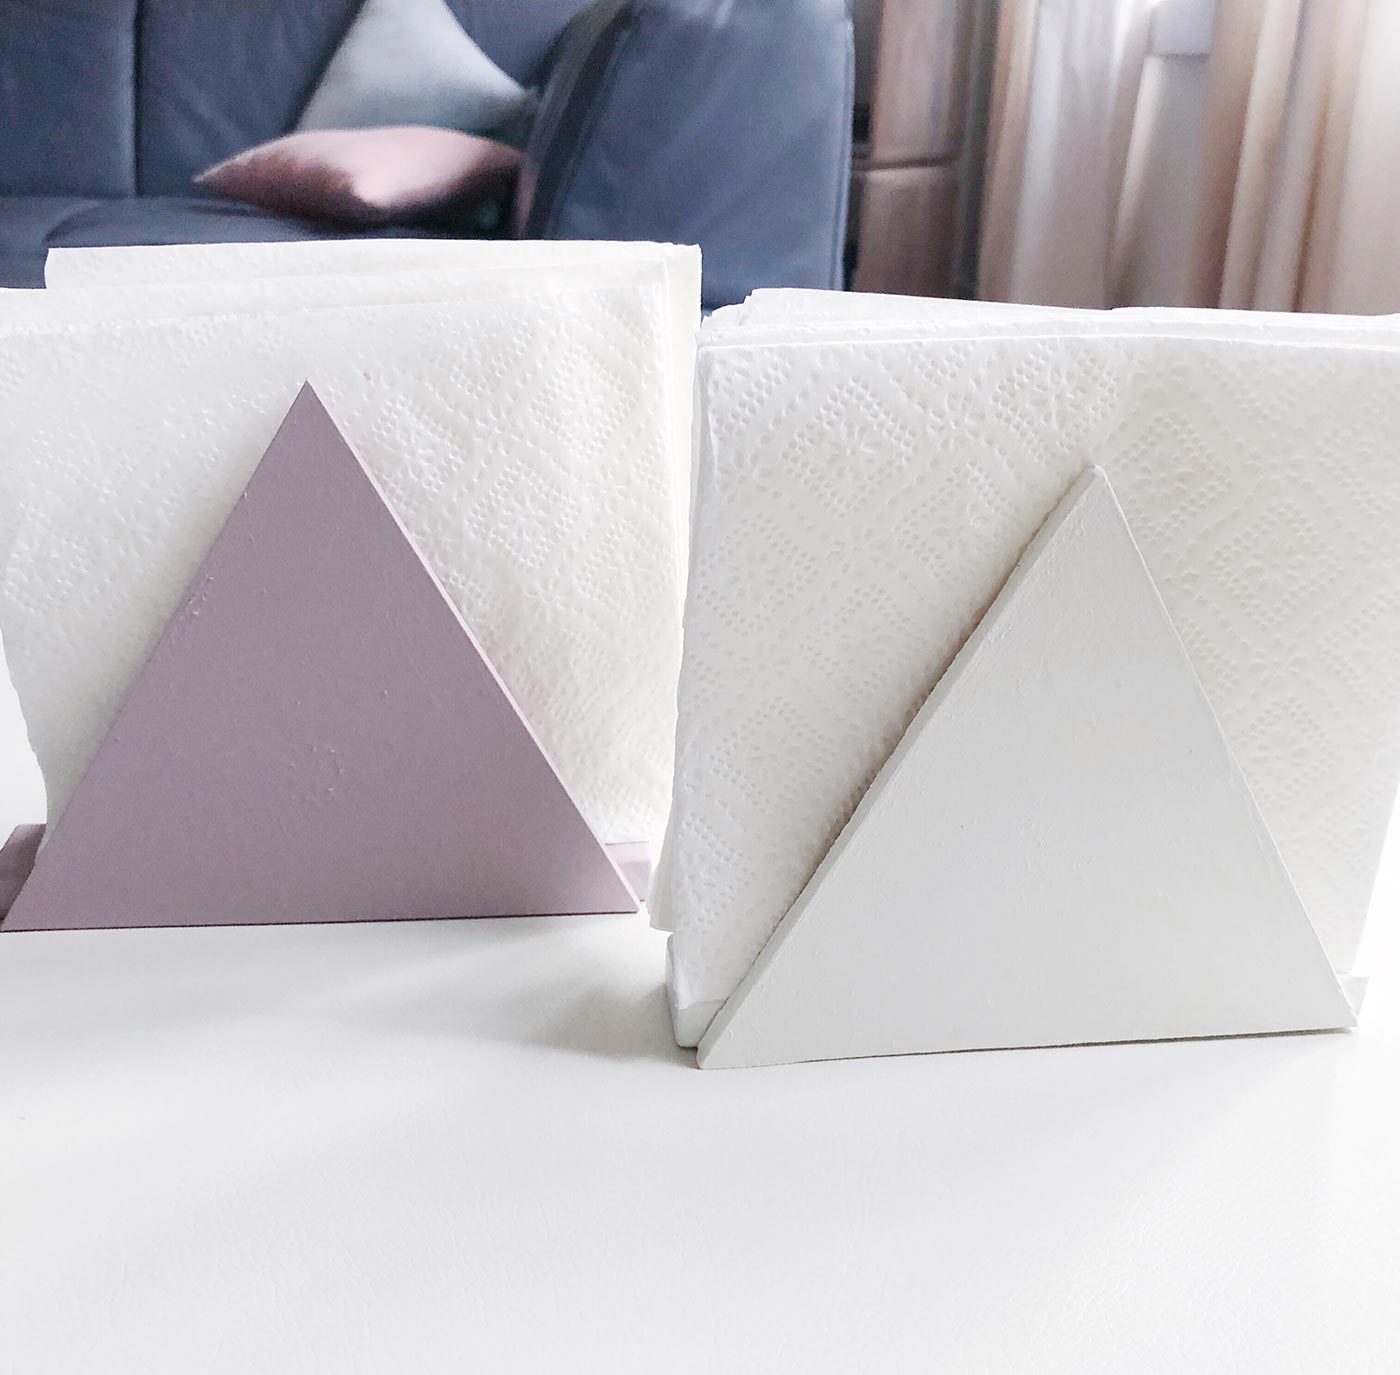 DIY triangle napkin holders of painted wood